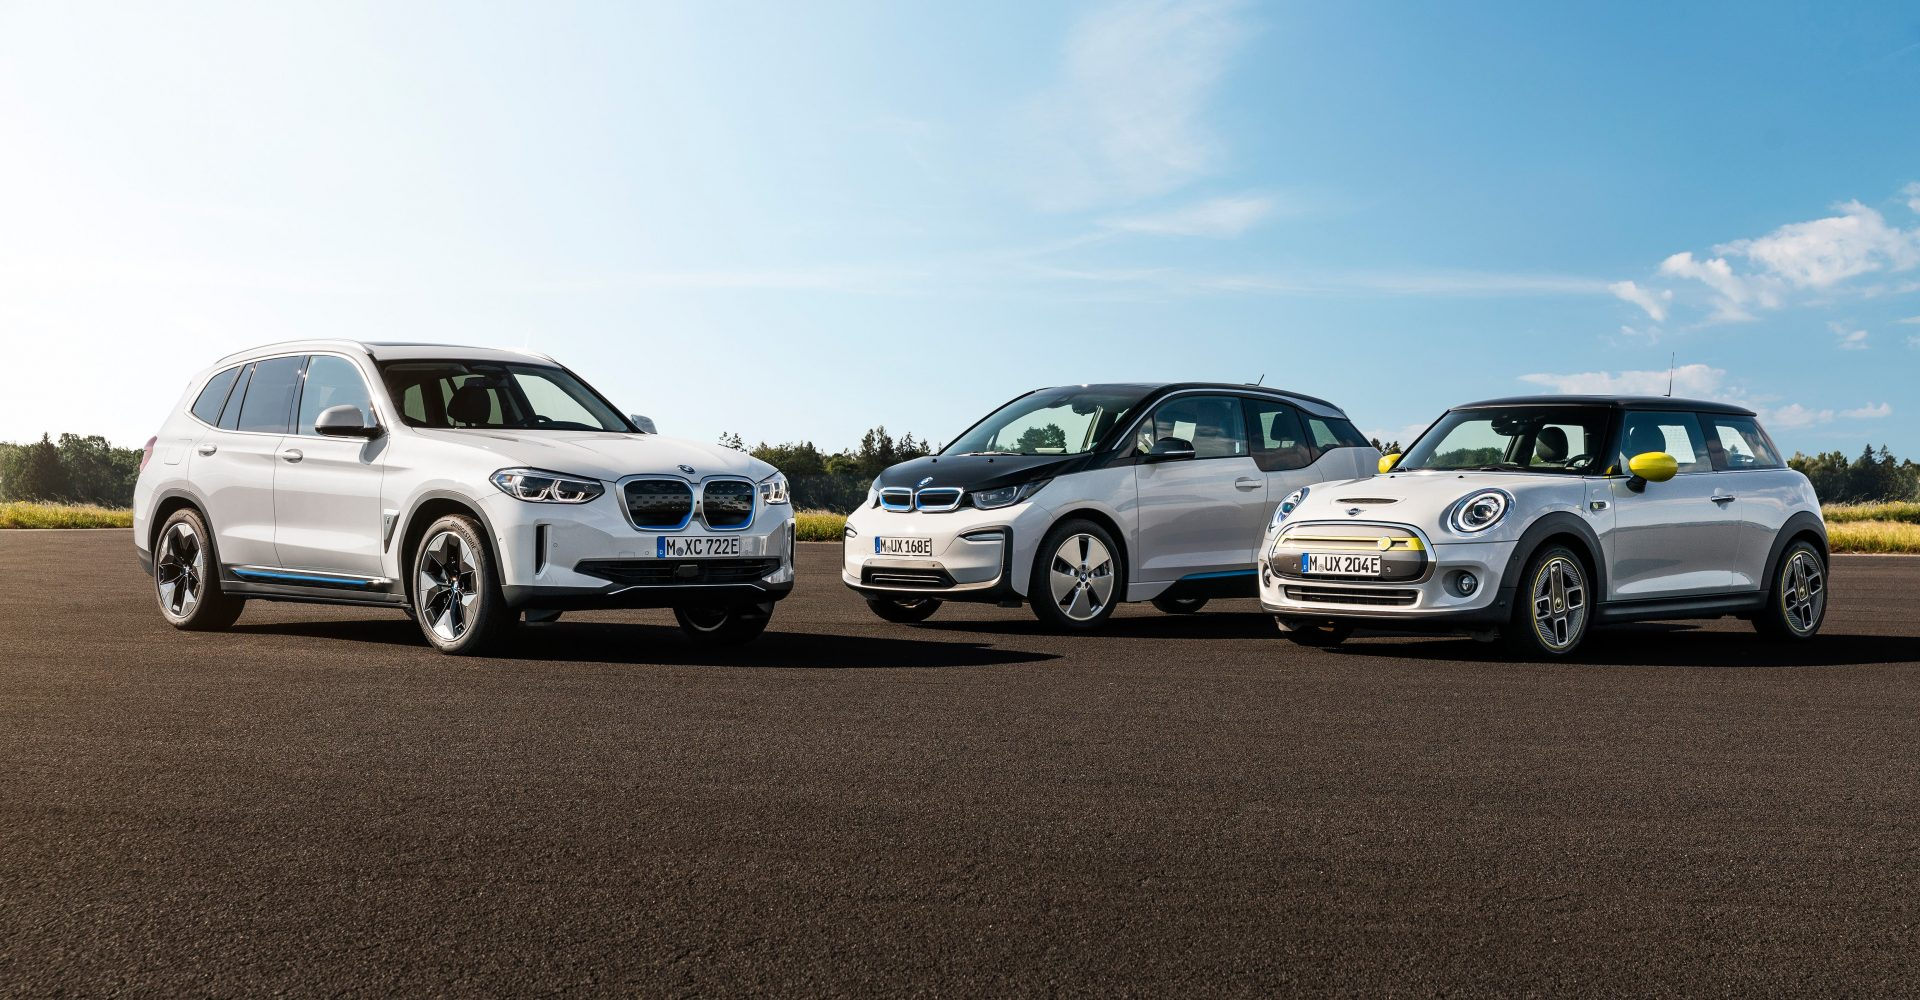 BMW second-life solution sees retired car batteries used as mobile power units